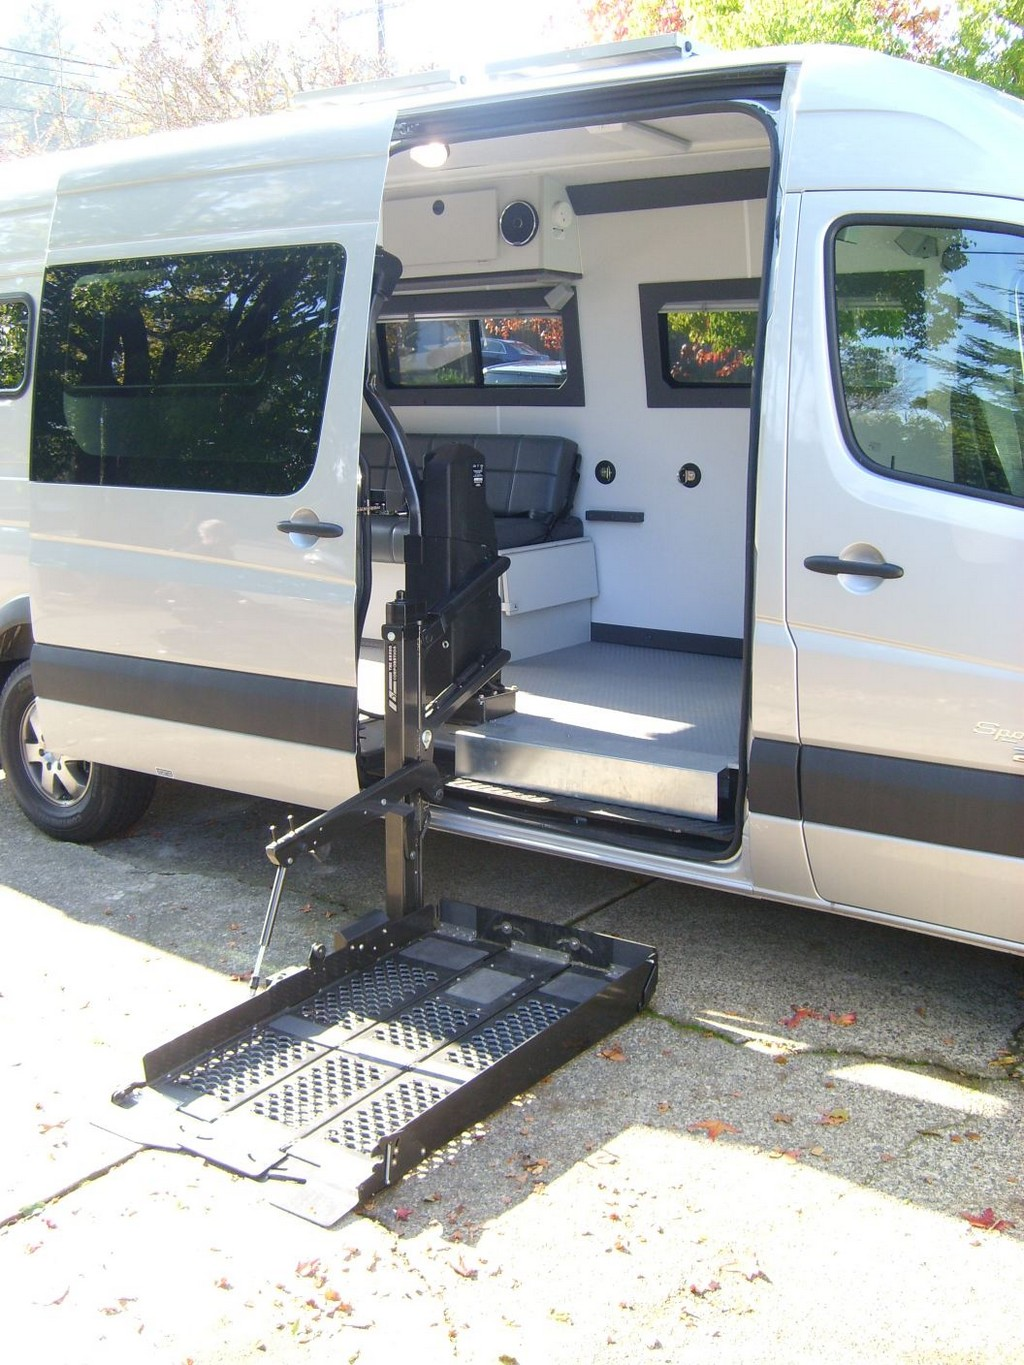 diy wheelchair lifts for motorhome, wheel chair stair lifts, ricon wheelchair lifts for vans, wheel chair lifts